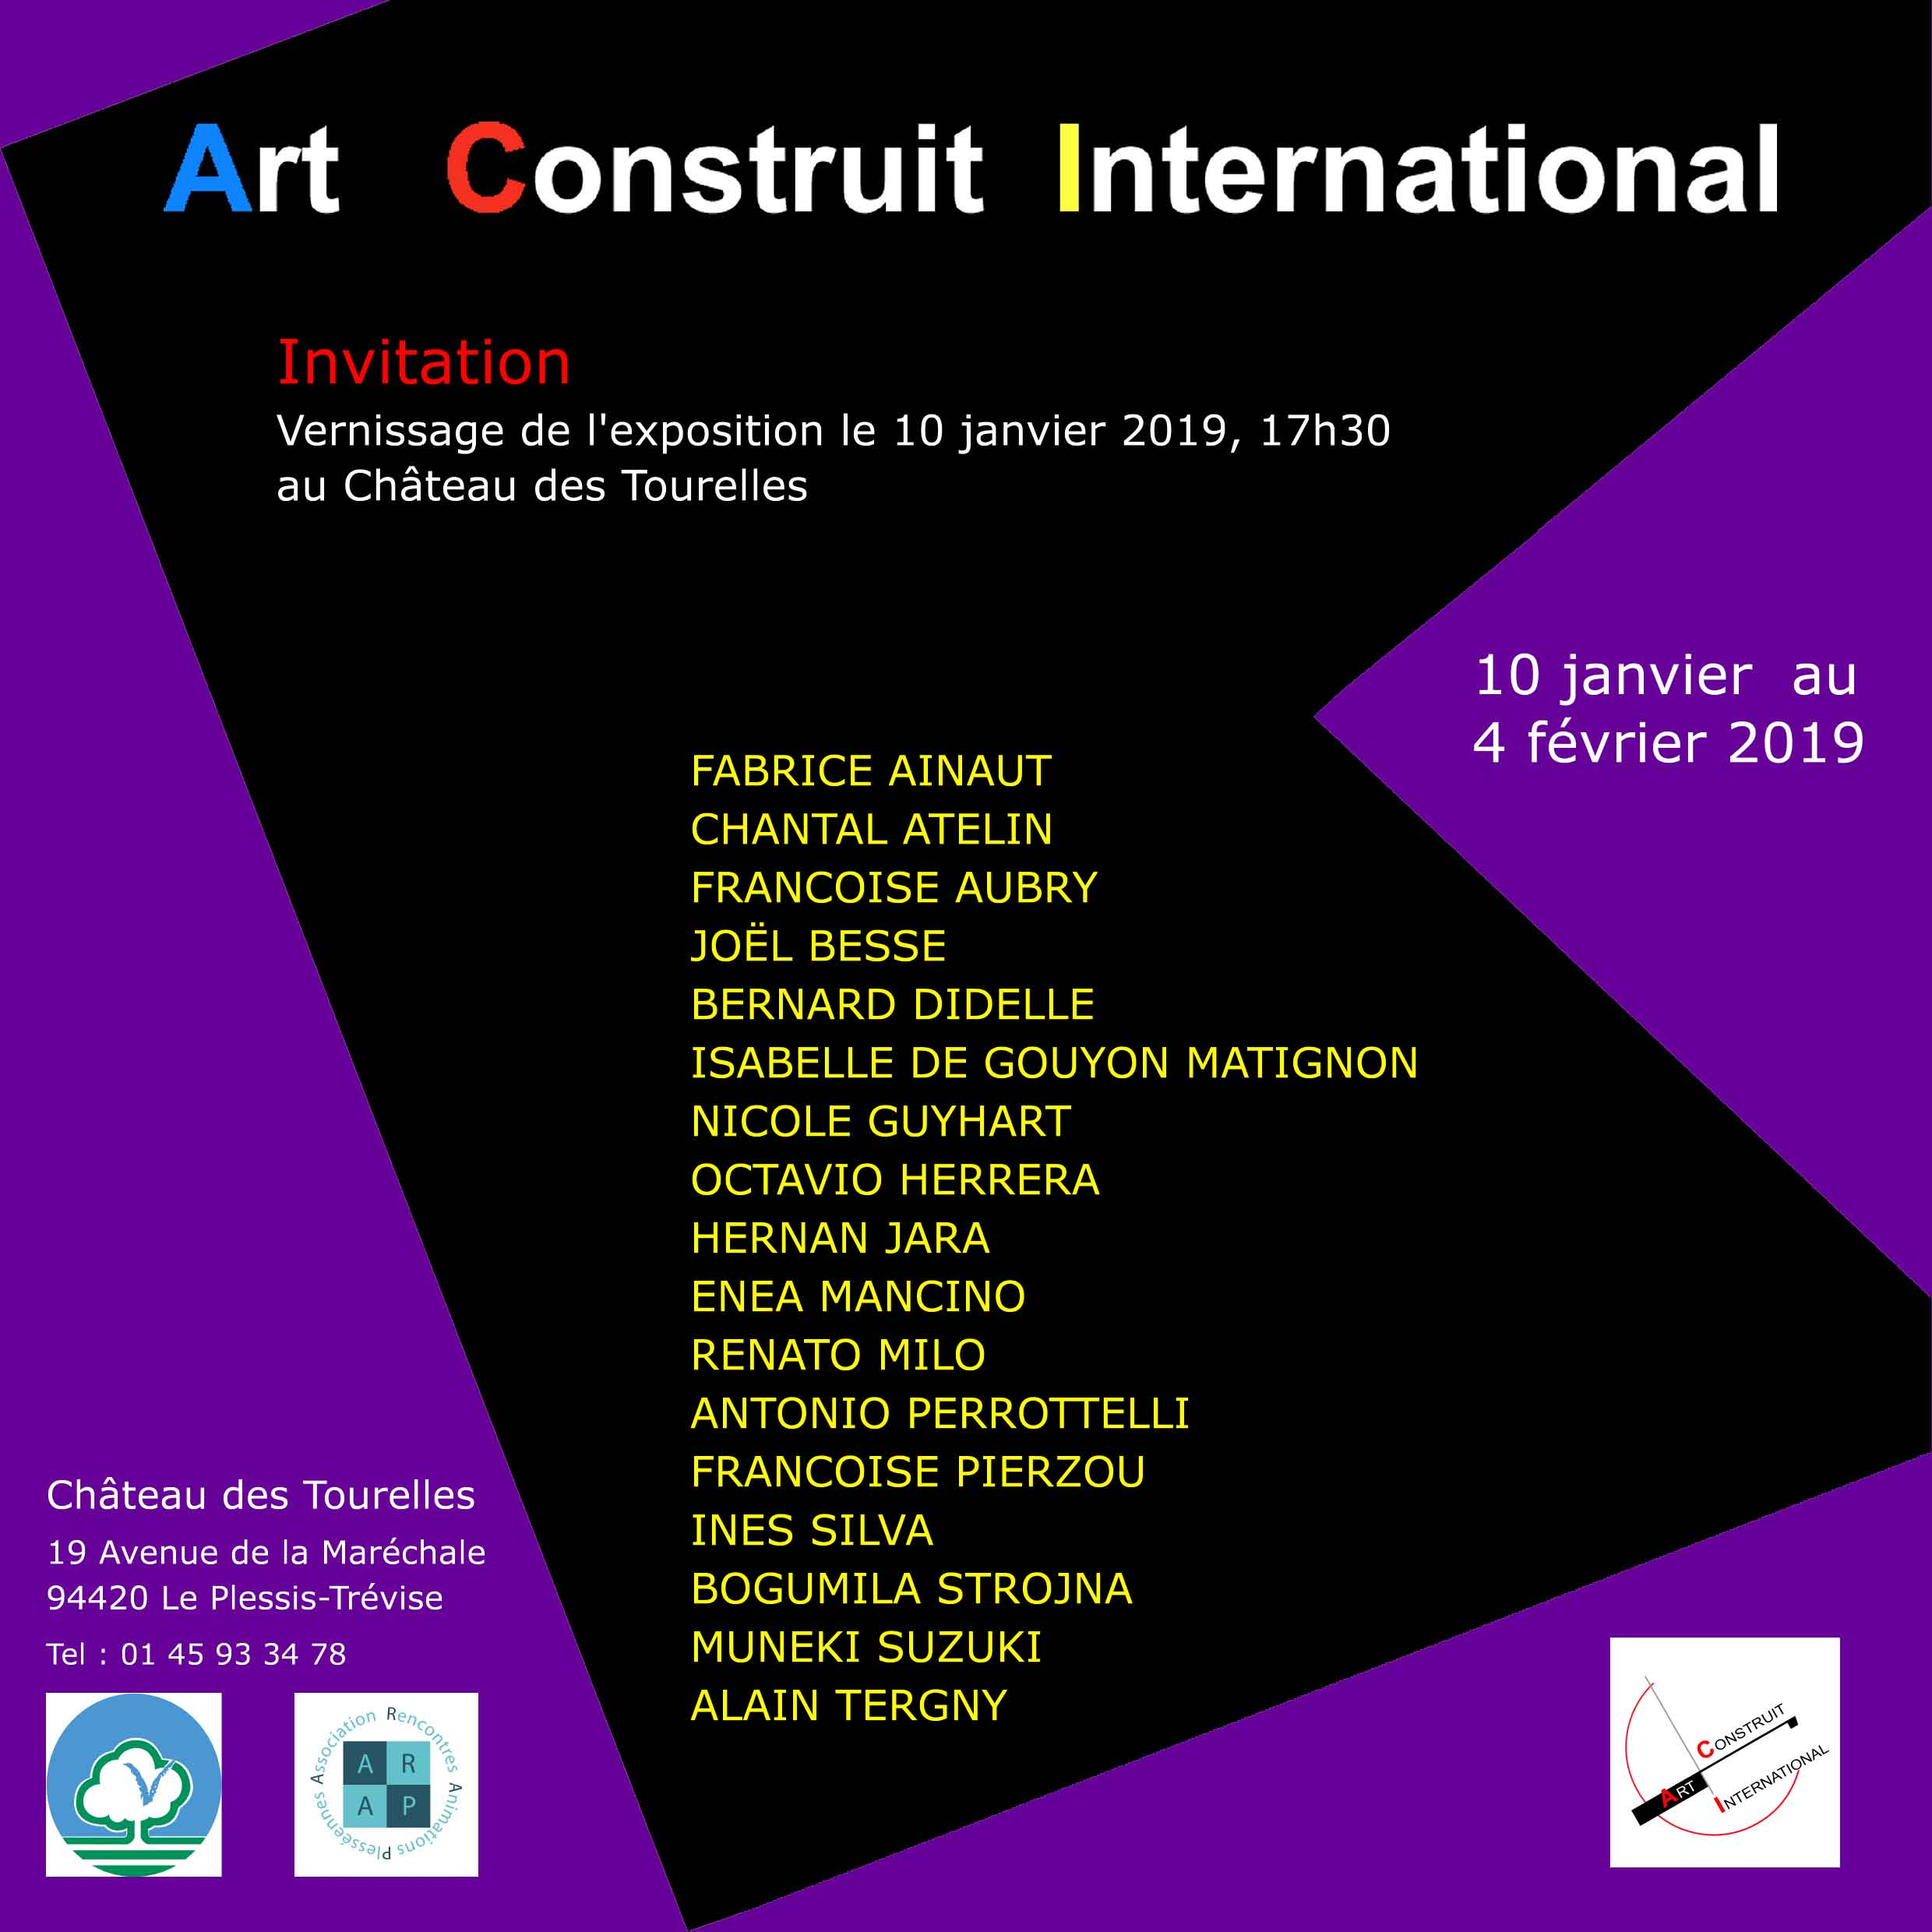 Art Construit International